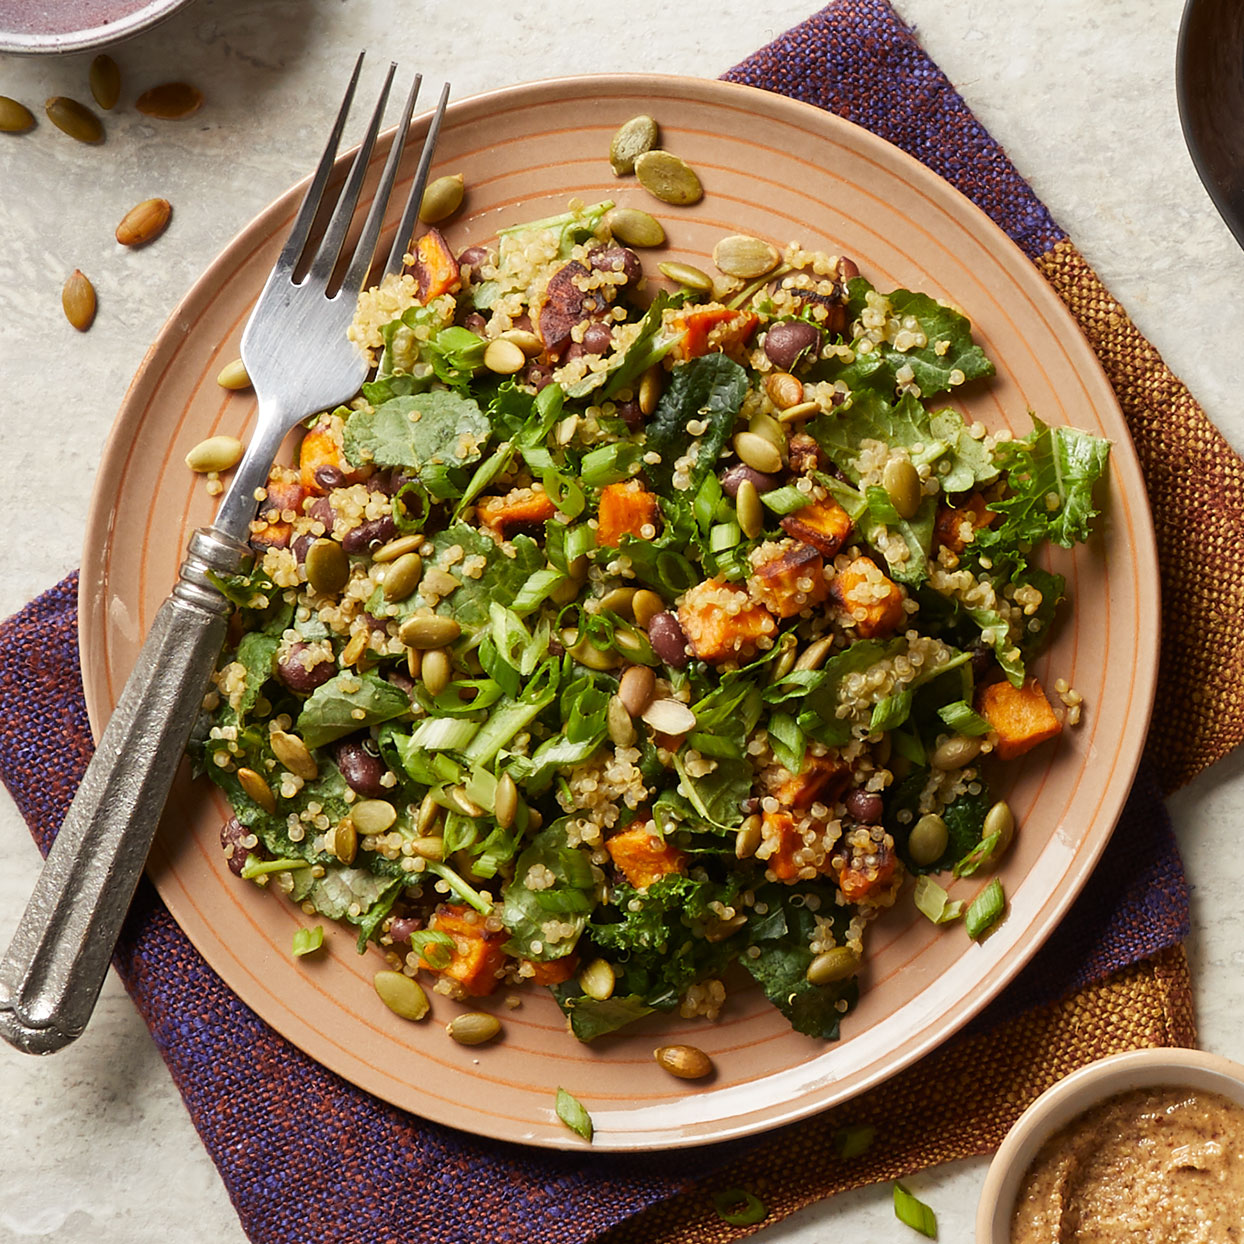 Precooked quinoa helps keep this healthy salad recipe quick and simple. Loaded with black beans, kale, and avocado, this recipe is as filling as it is nutritious. You can also make the sweet potatoes and dressing ahead. Source: Diabetic Living Magazine, Winter 2020